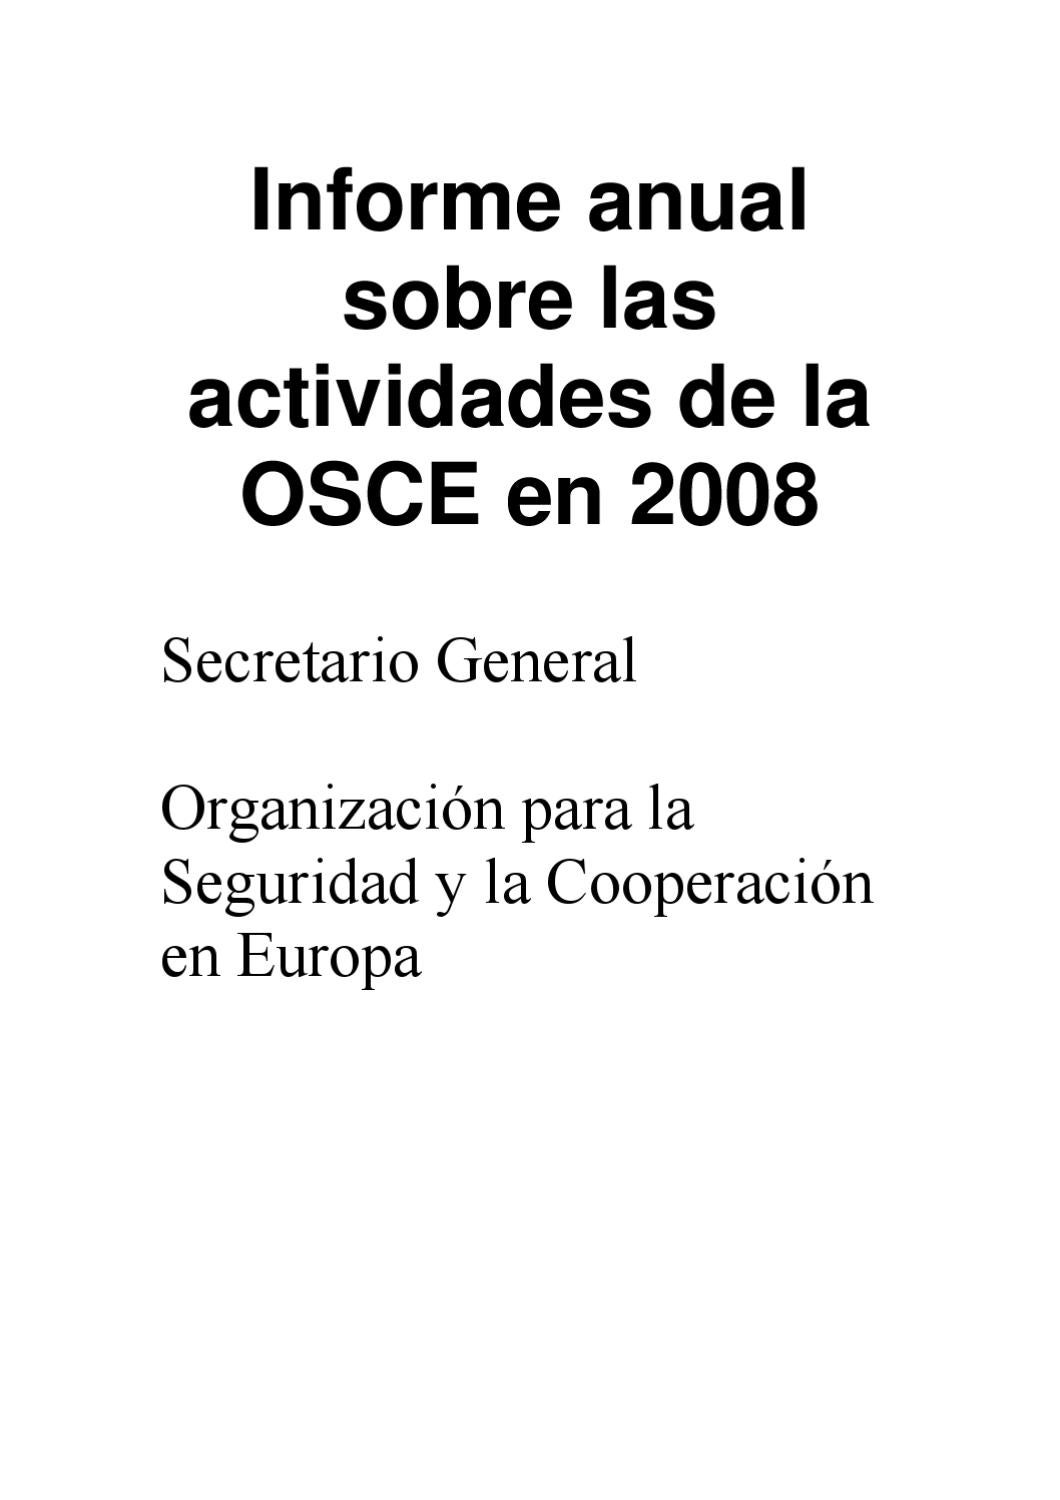 OSCE Annual Report 2008 (es) by The Organization for Security and Co ...